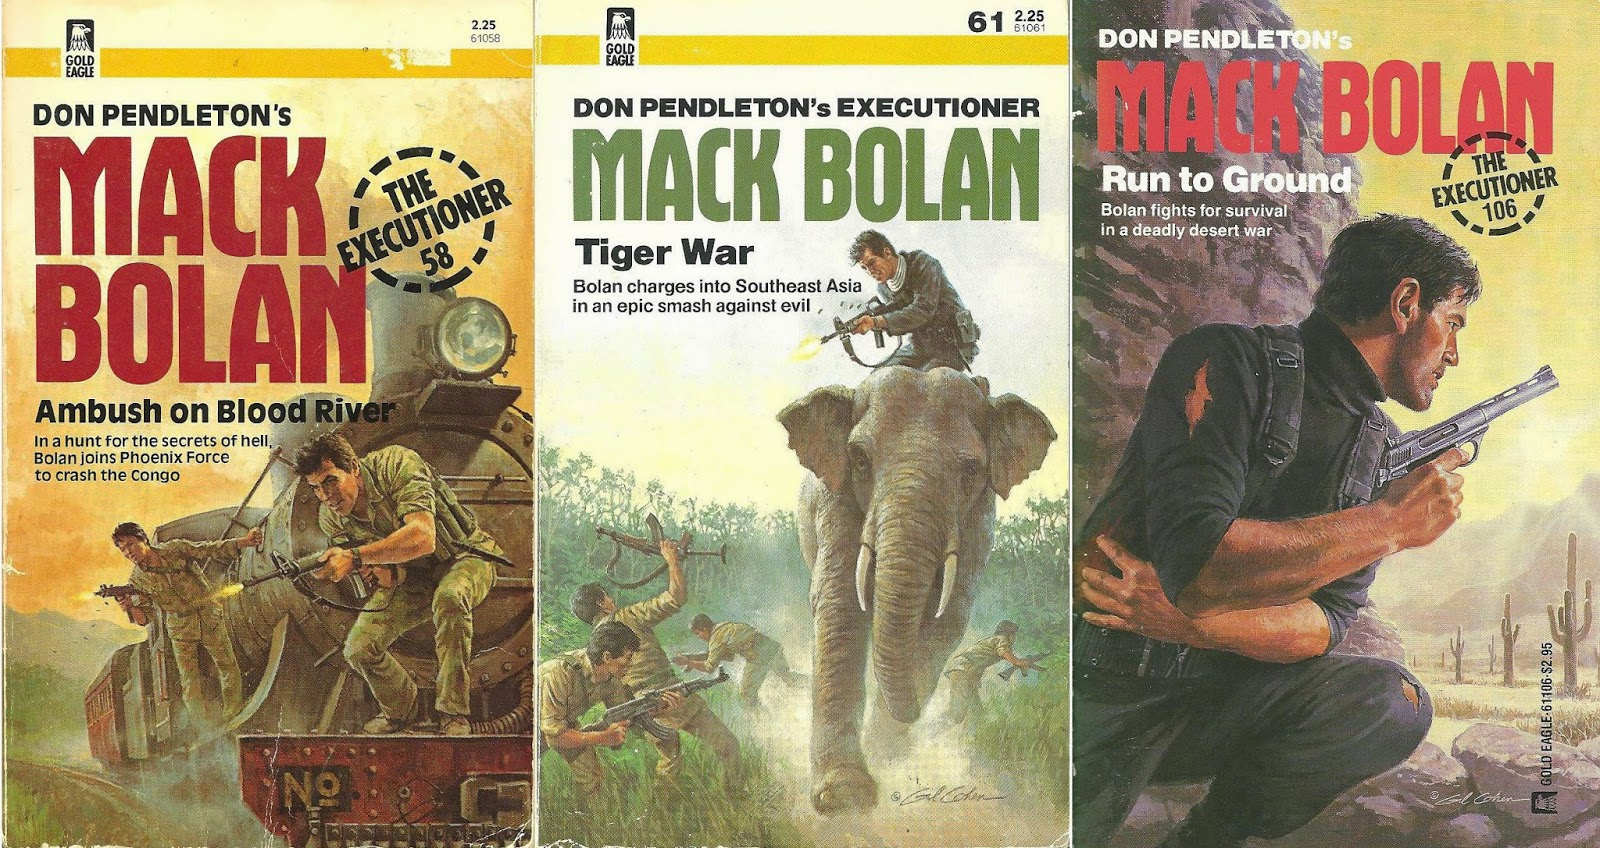 Three great Gil Cohen covers